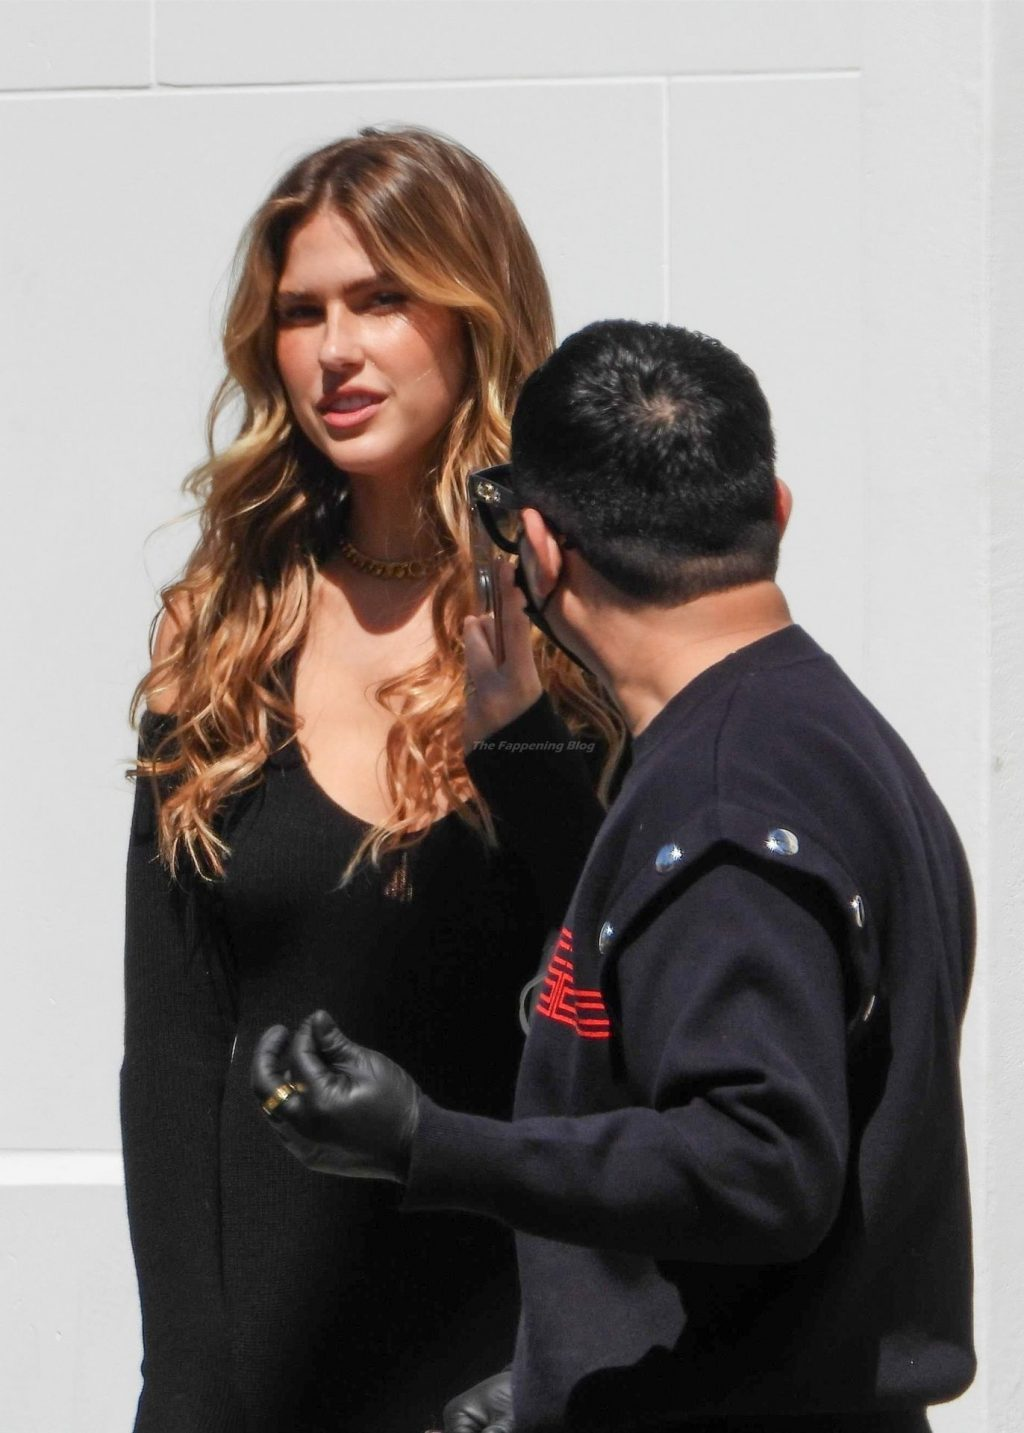 Kara Del Toro Poses up During a New Photoshoot with Friends on Rodeo Drive (50 Photos)